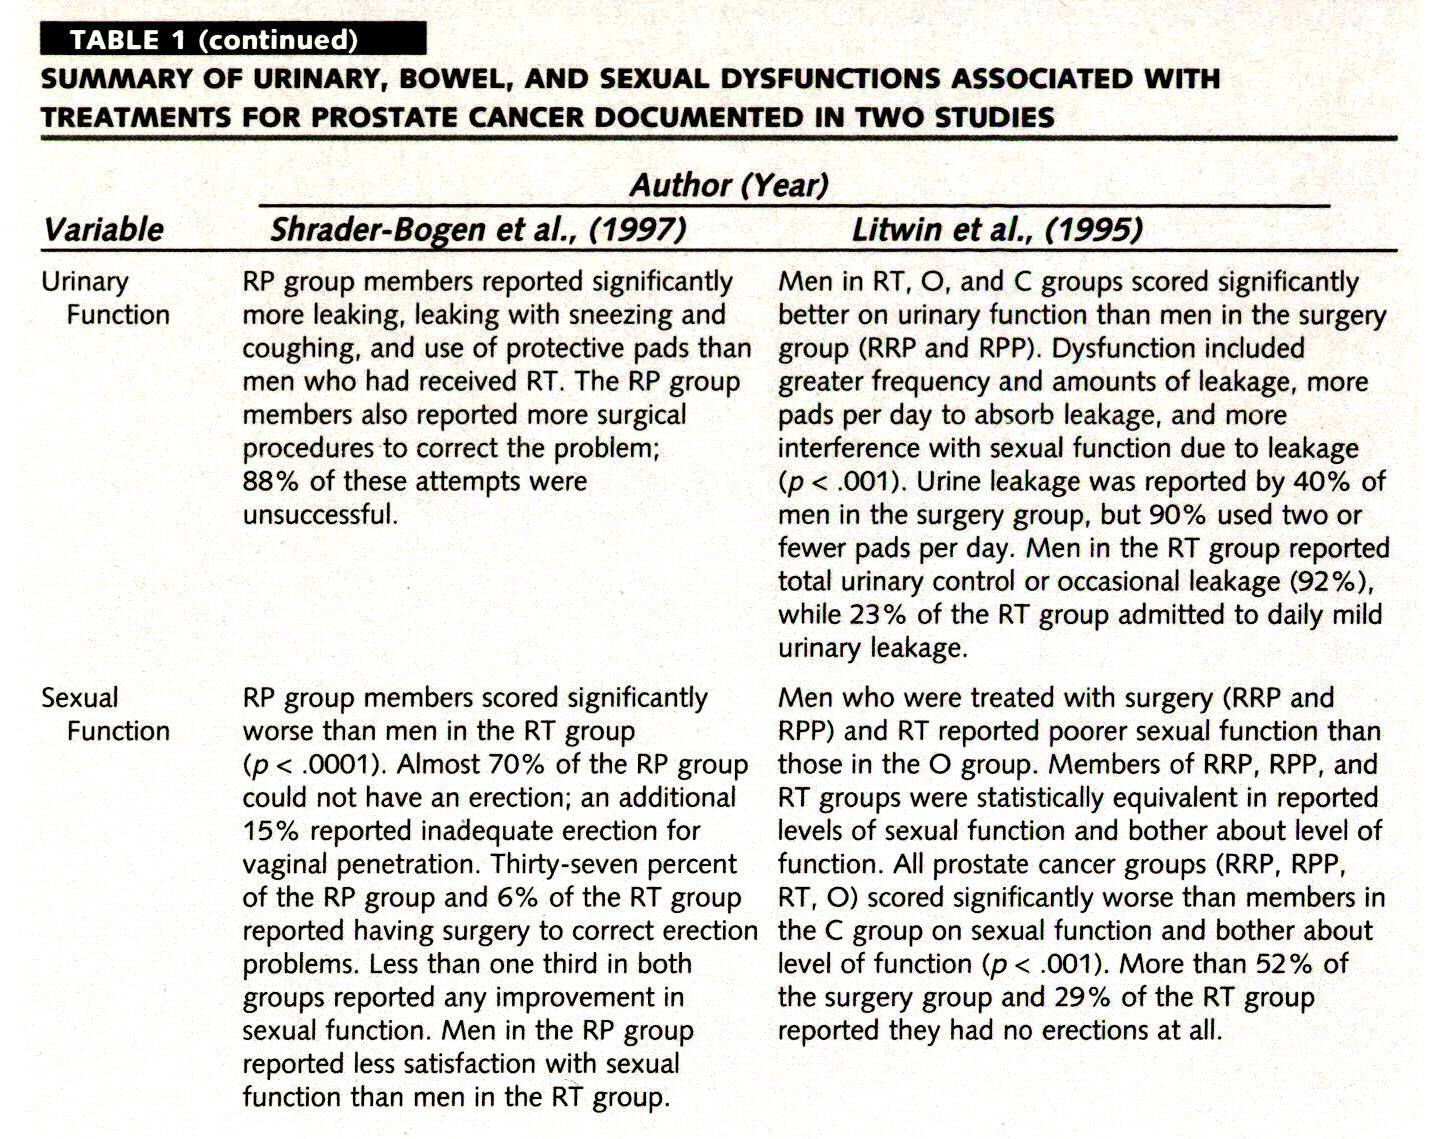 TABLE 1SUMMARY OF URINARY, BOWEL, AND SEXUAL DYSFUNCTIONS ASSOCIATED WITH TREATMENTS FOR PROSTATE CANCER DOCUMENTED IN TWO STUDIES